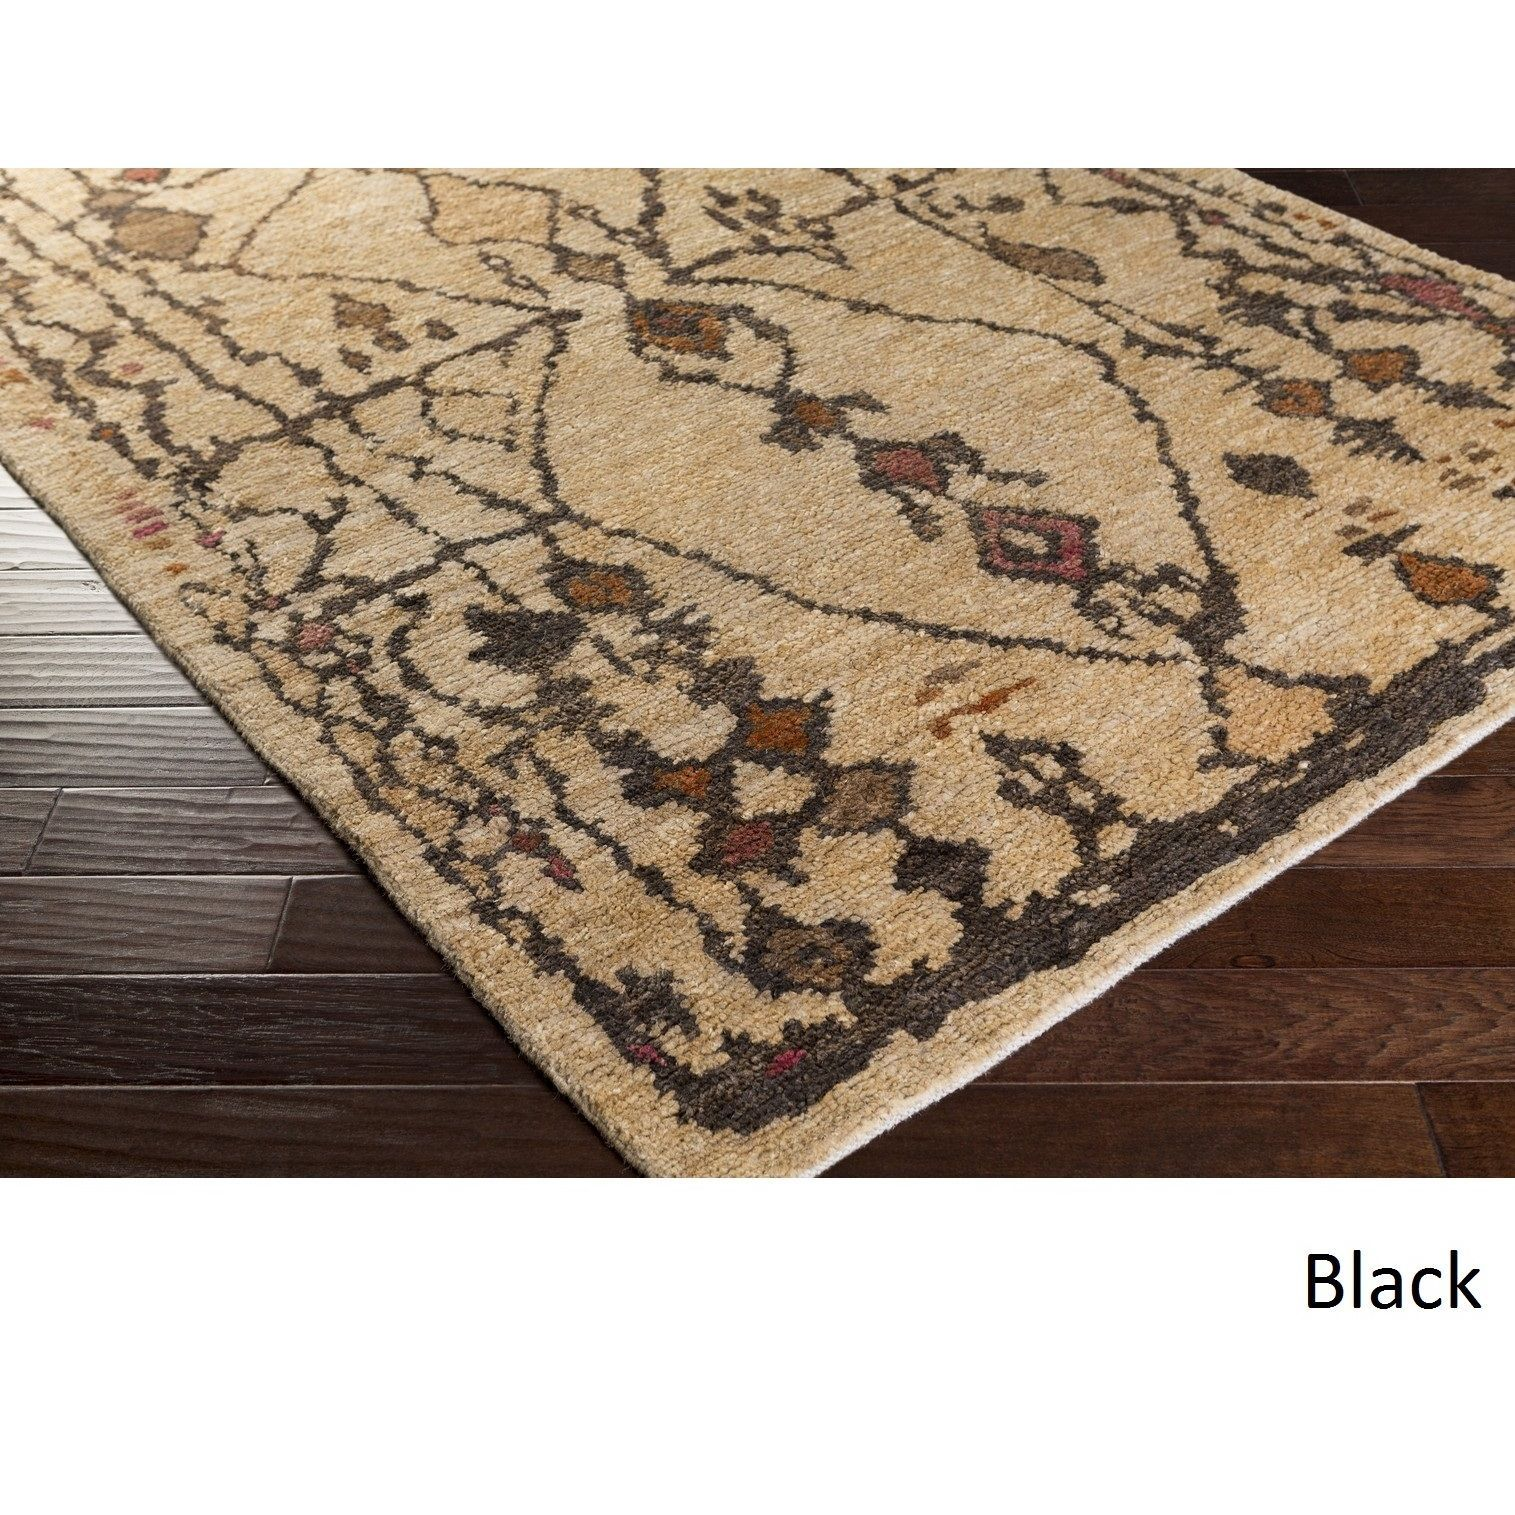 Hand-Knotted Edith Jute Rug (6' x 9') (Black), Beige, Size 6' x 9'